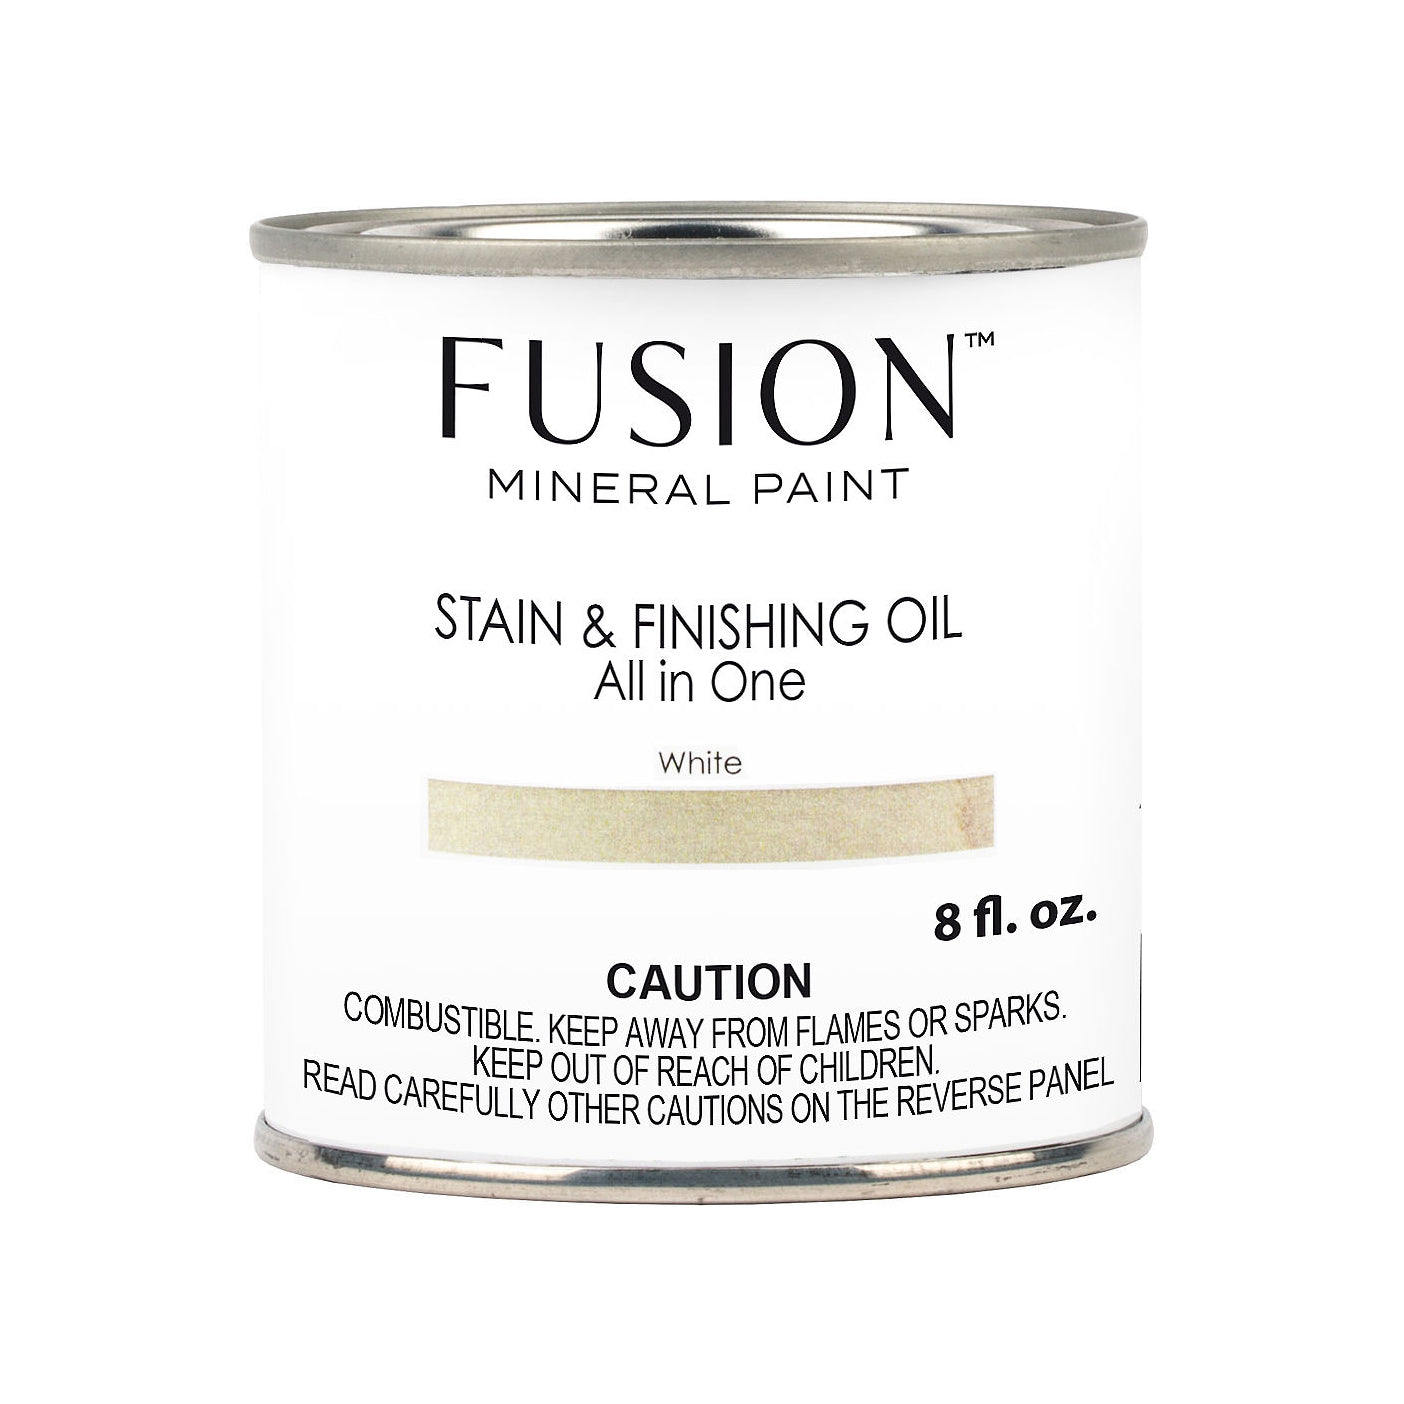 Fusion Mineral Paint Stain and Finishing Oil: White - Lyla's: Clothing, Decor & MOre